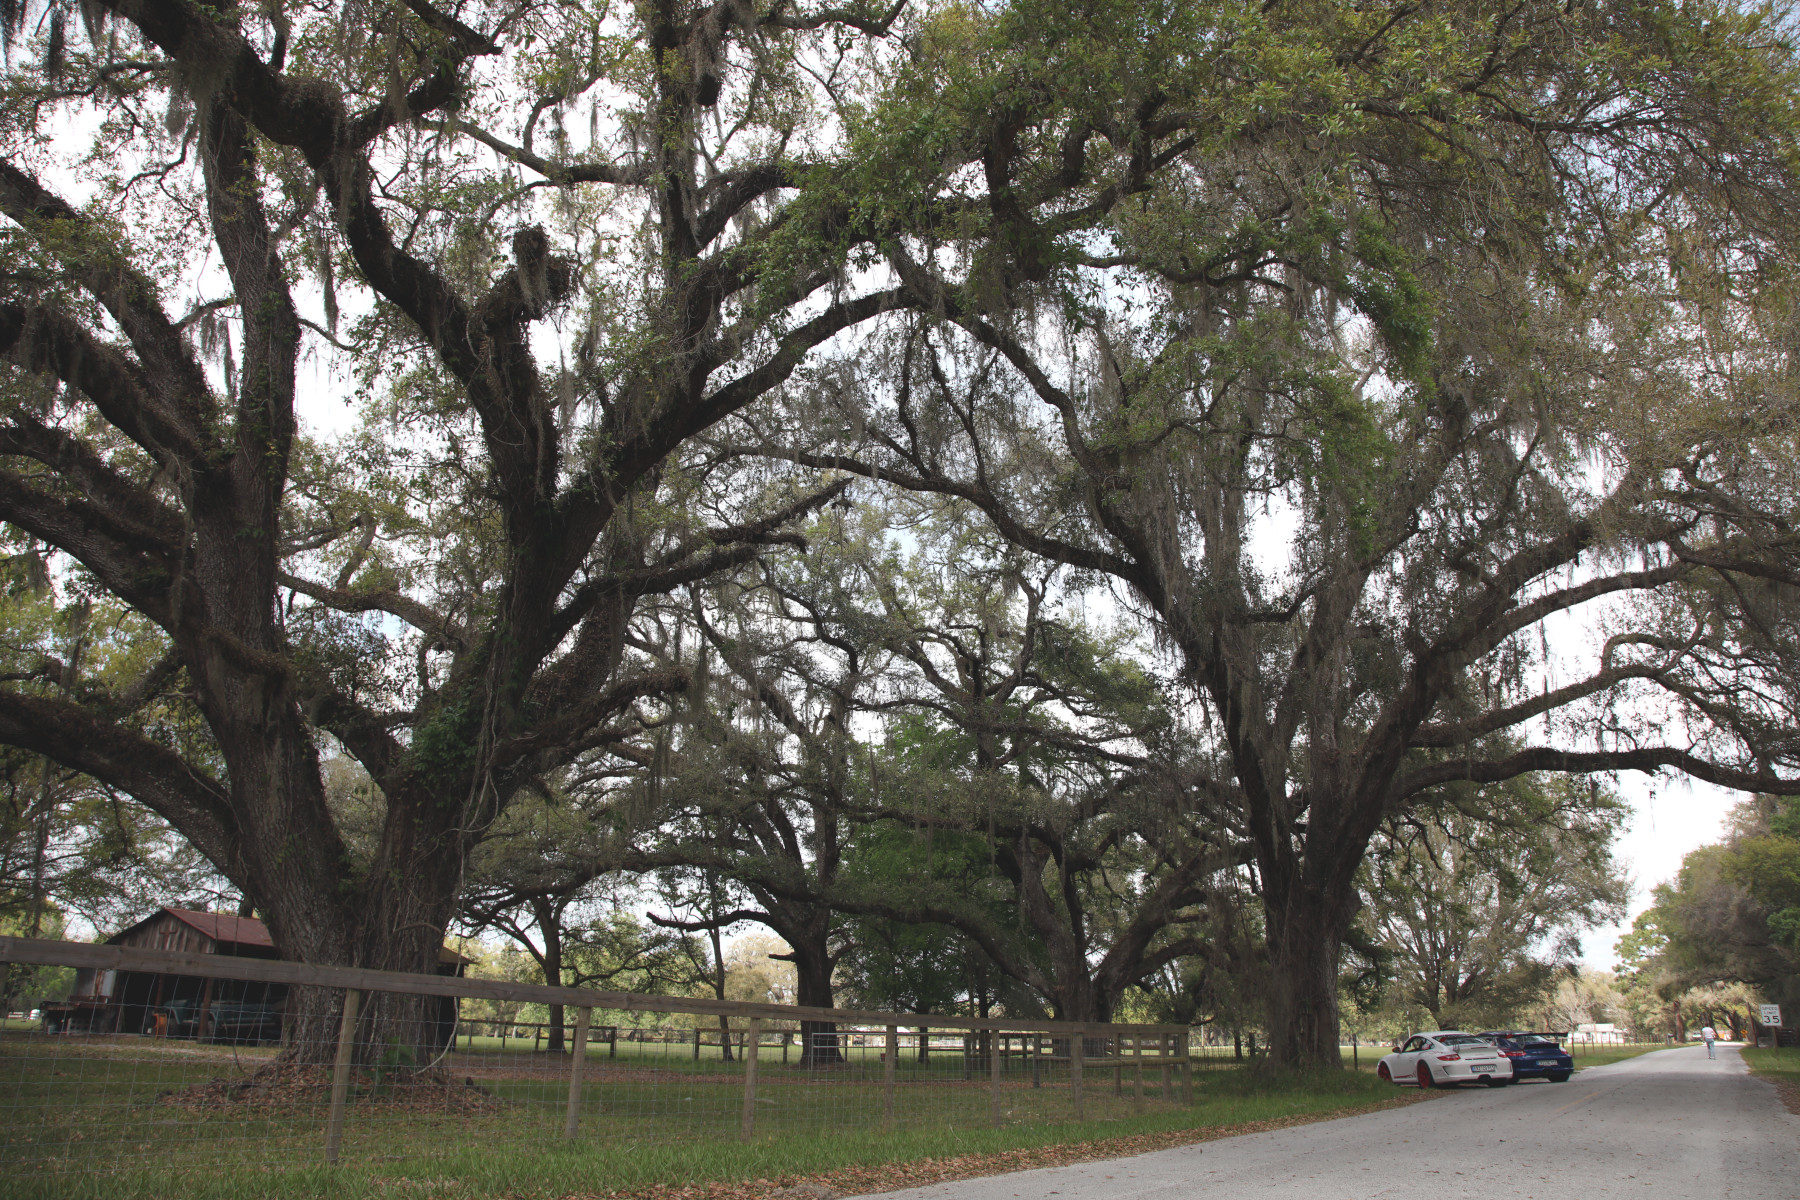 Live oaks at Sumter County